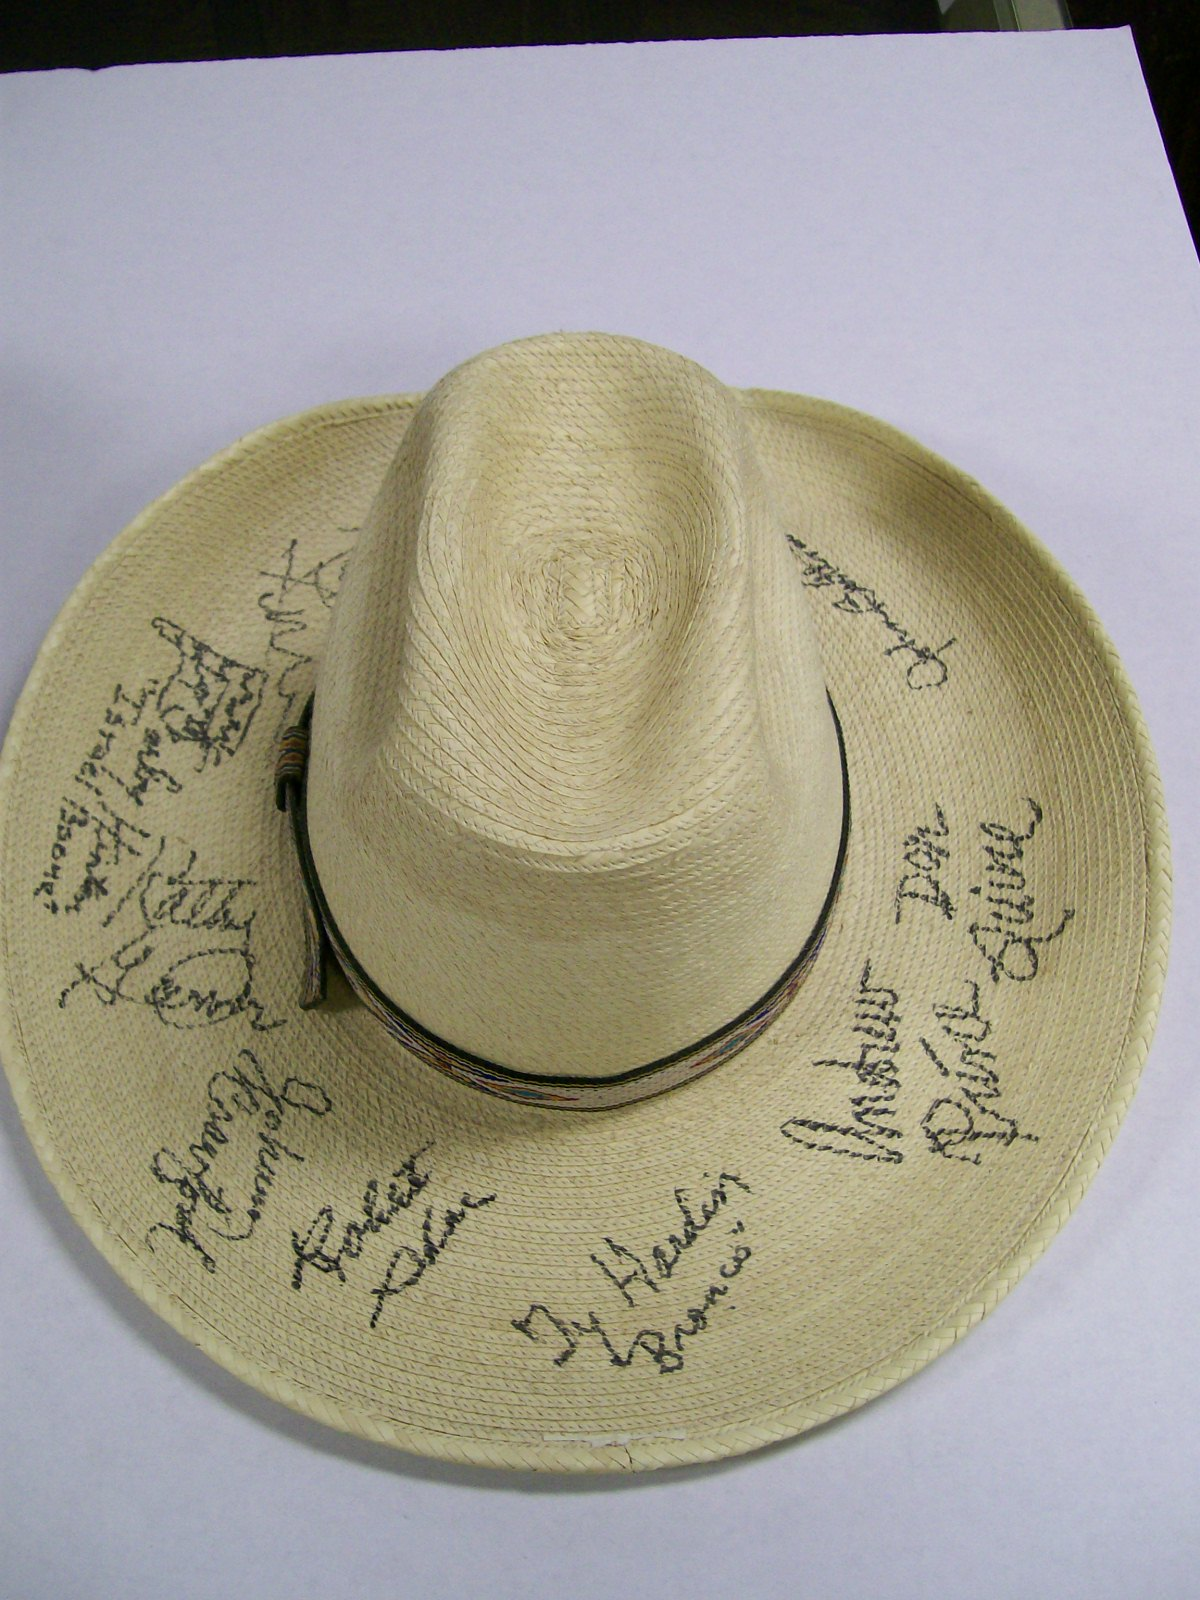 Ty Hardin Woven Straw Hat Autographed by 10 Stars 5/7/05